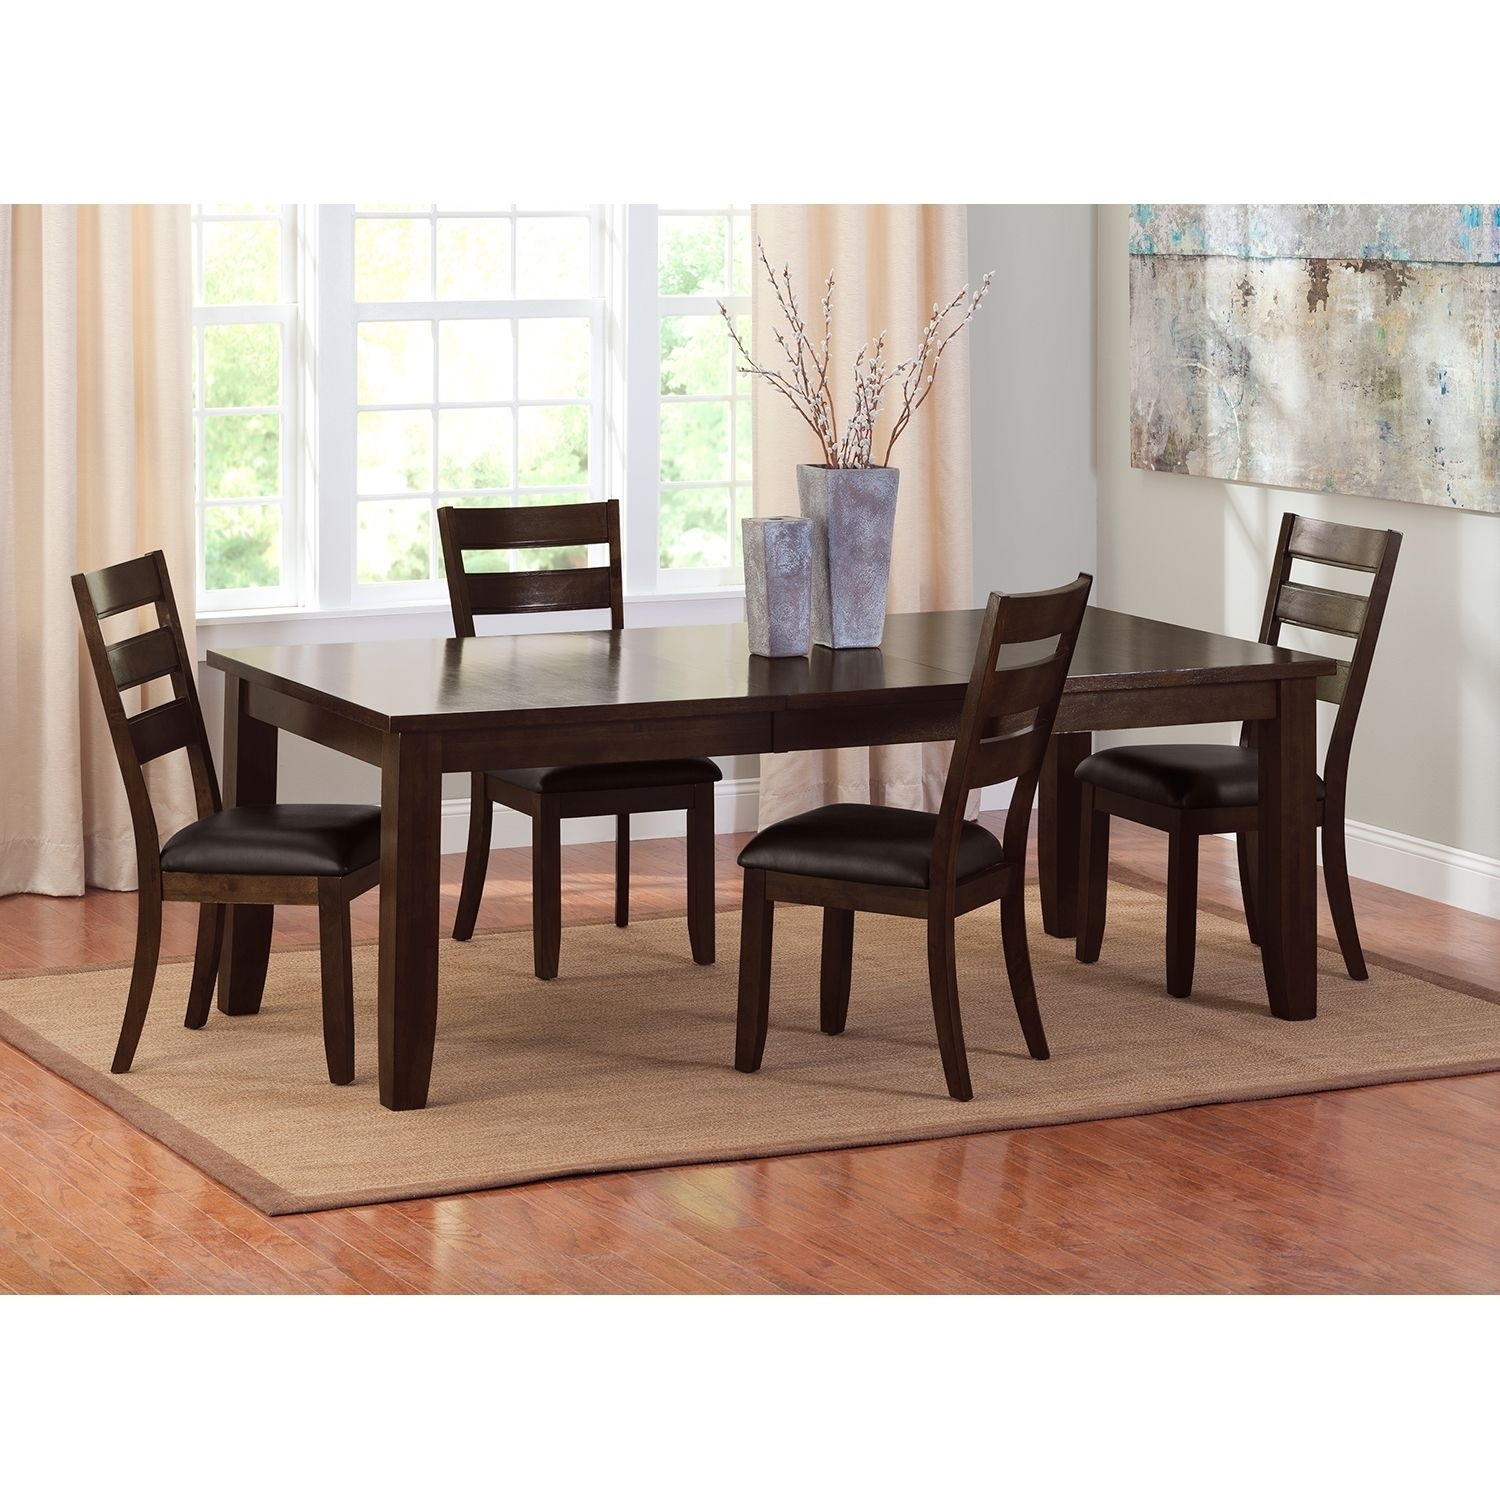 Abaco Table And 4 Chairs – Brown | Pinterest | City Furniture For 2017 Cora 7 Piece Dining Sets (Image 3 of 20)